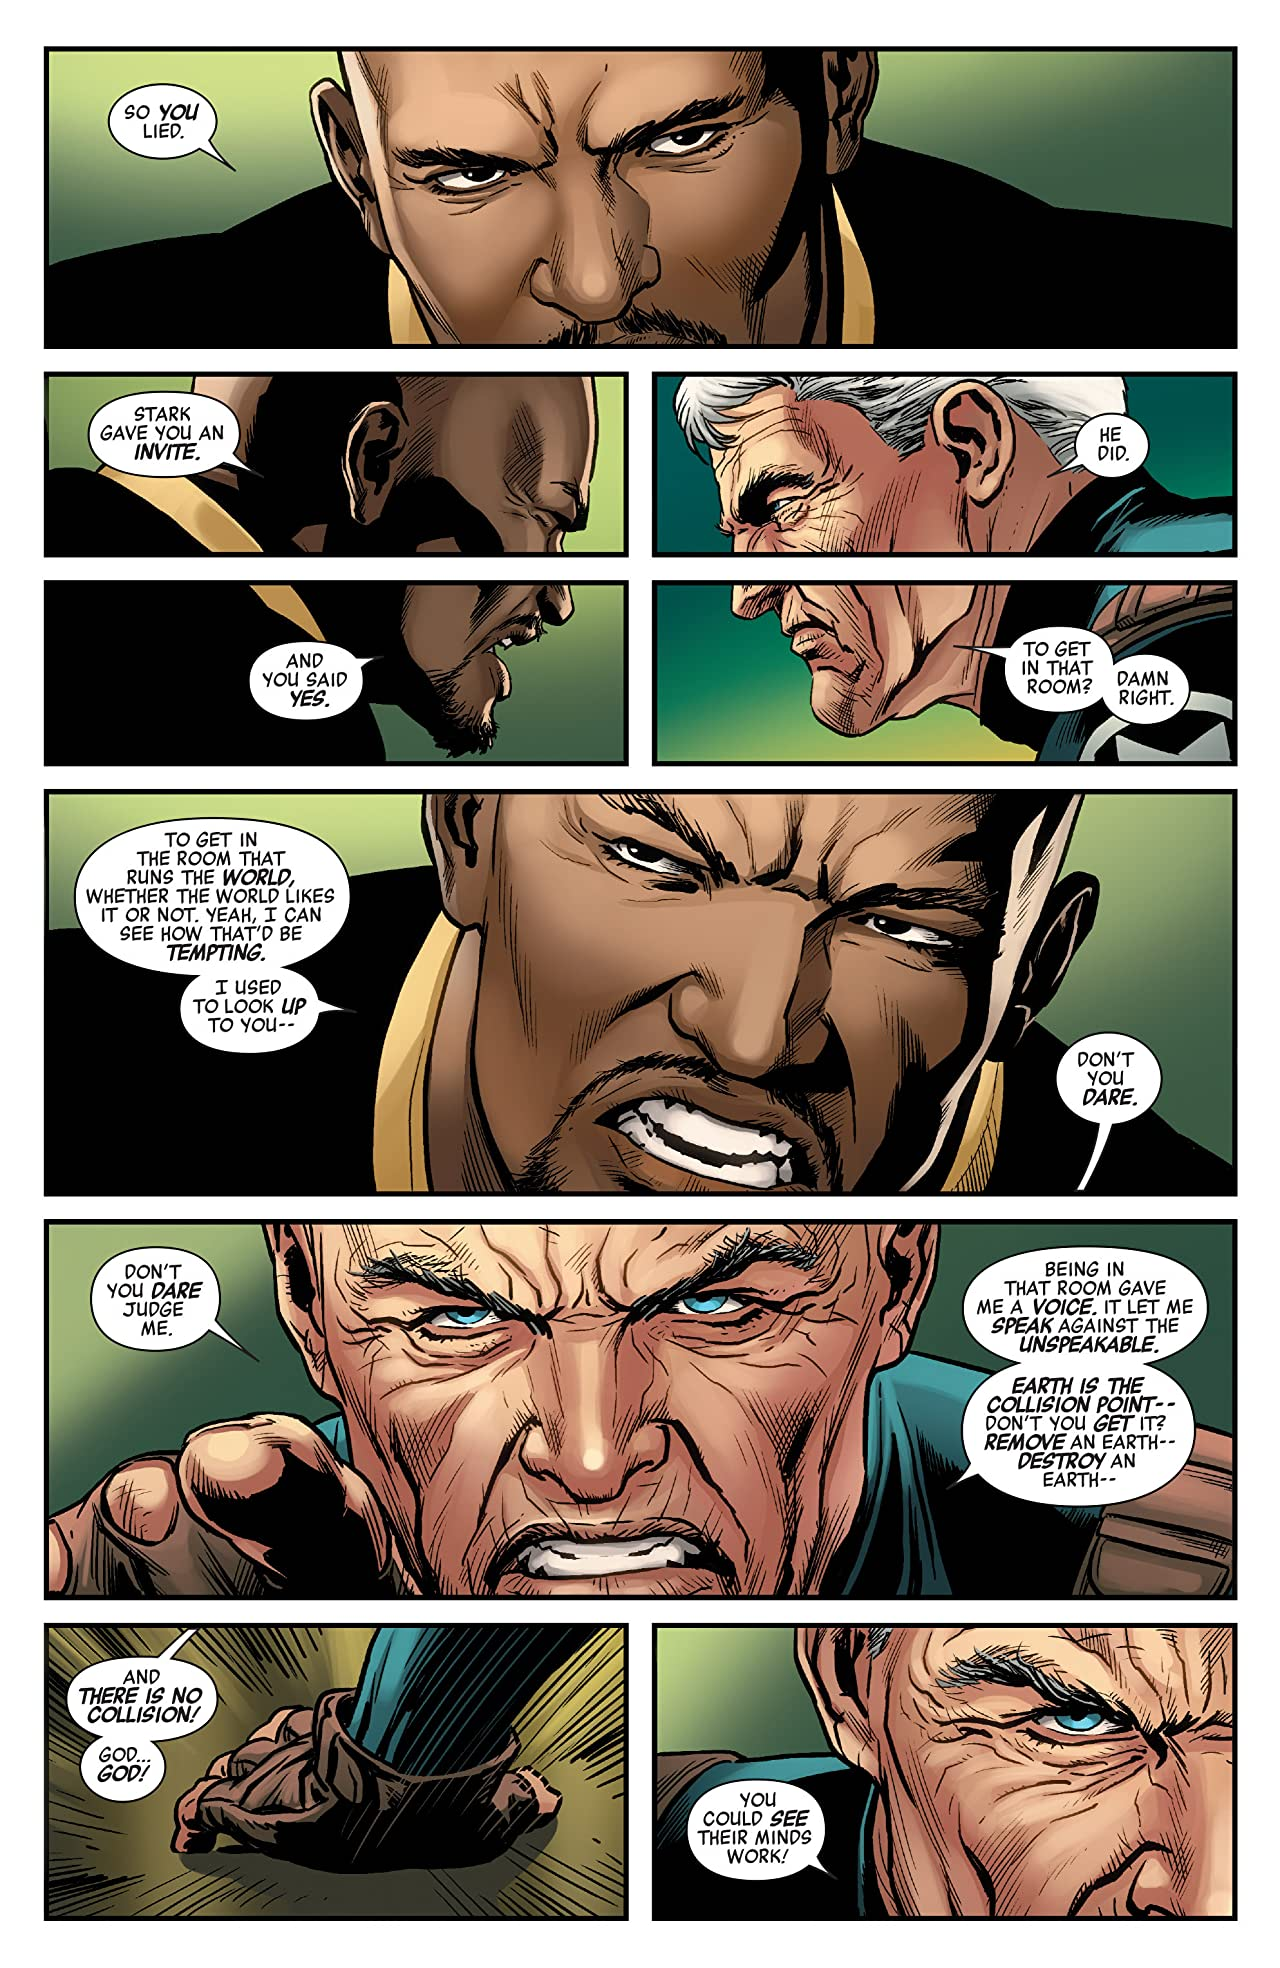 Captain America and the Mighty Avengers Vol. 2: Last Day